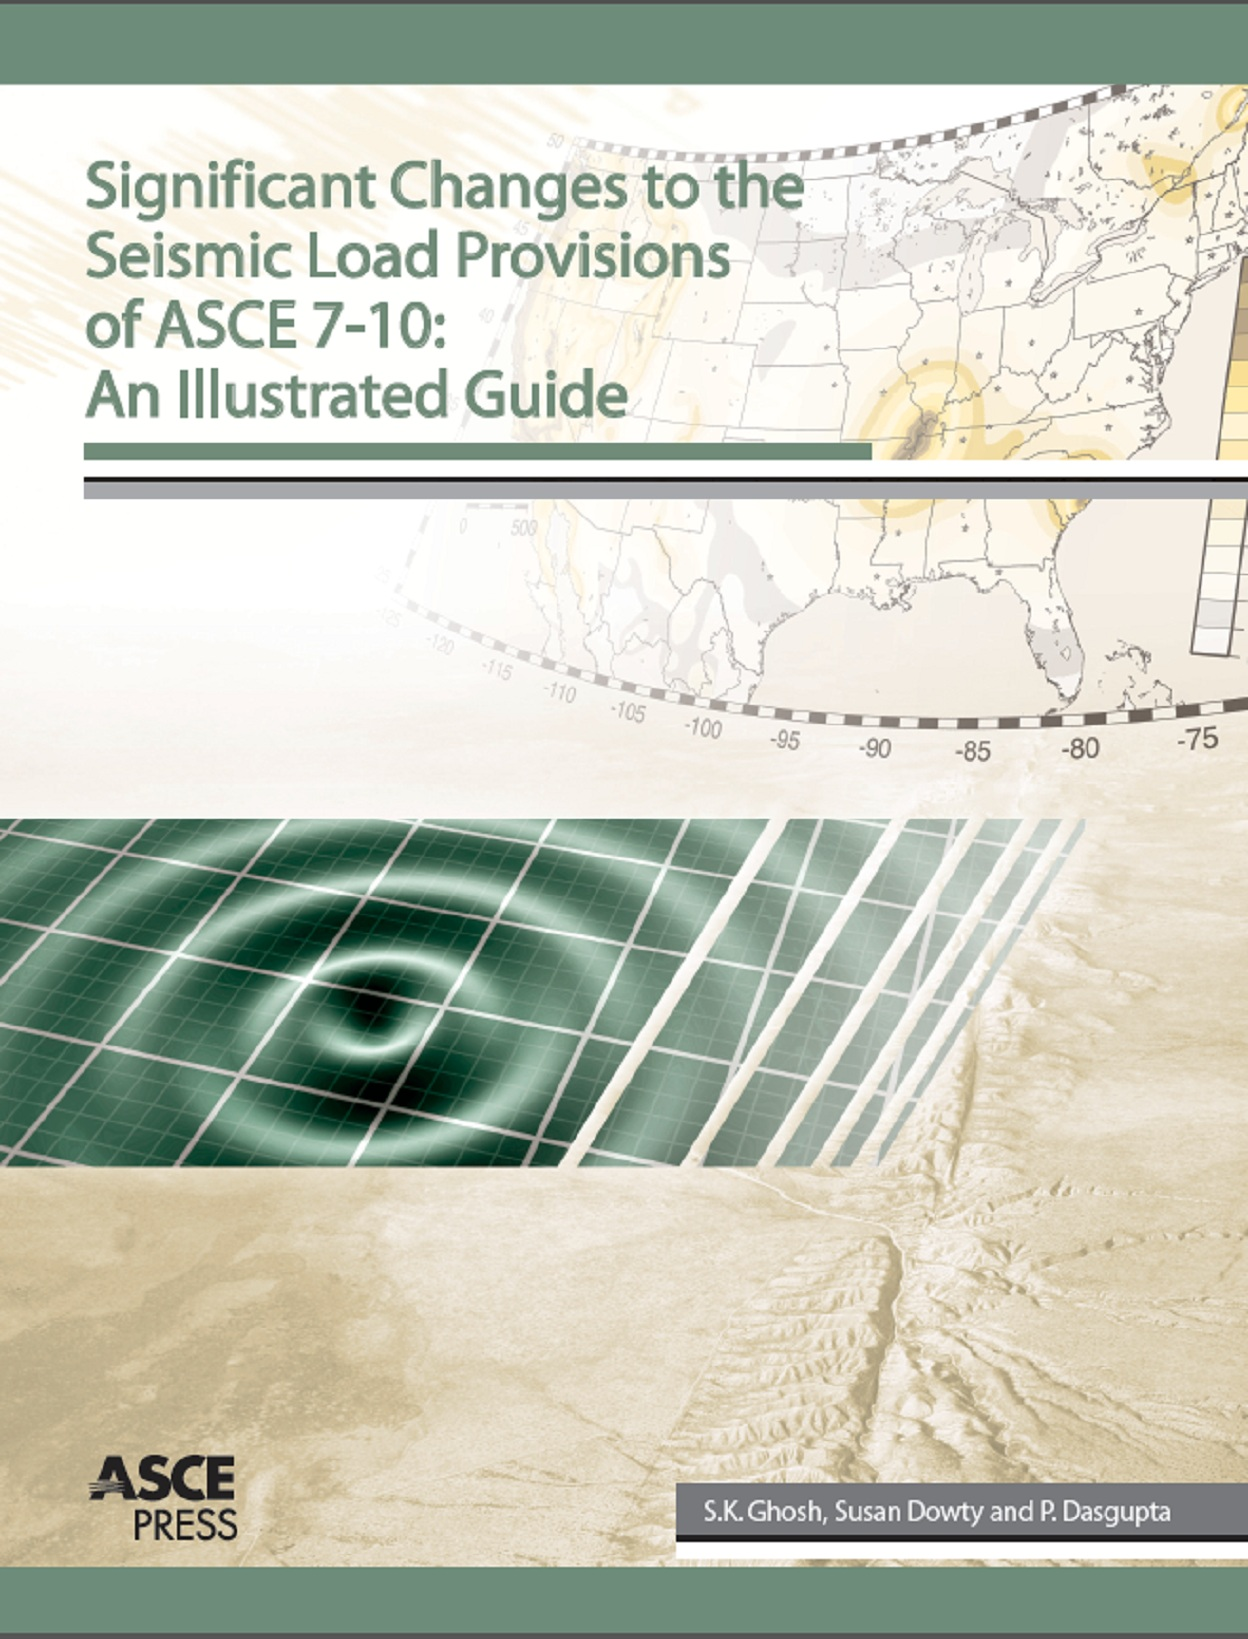 ASCE 7-10 Seismic Loads Significant Changes